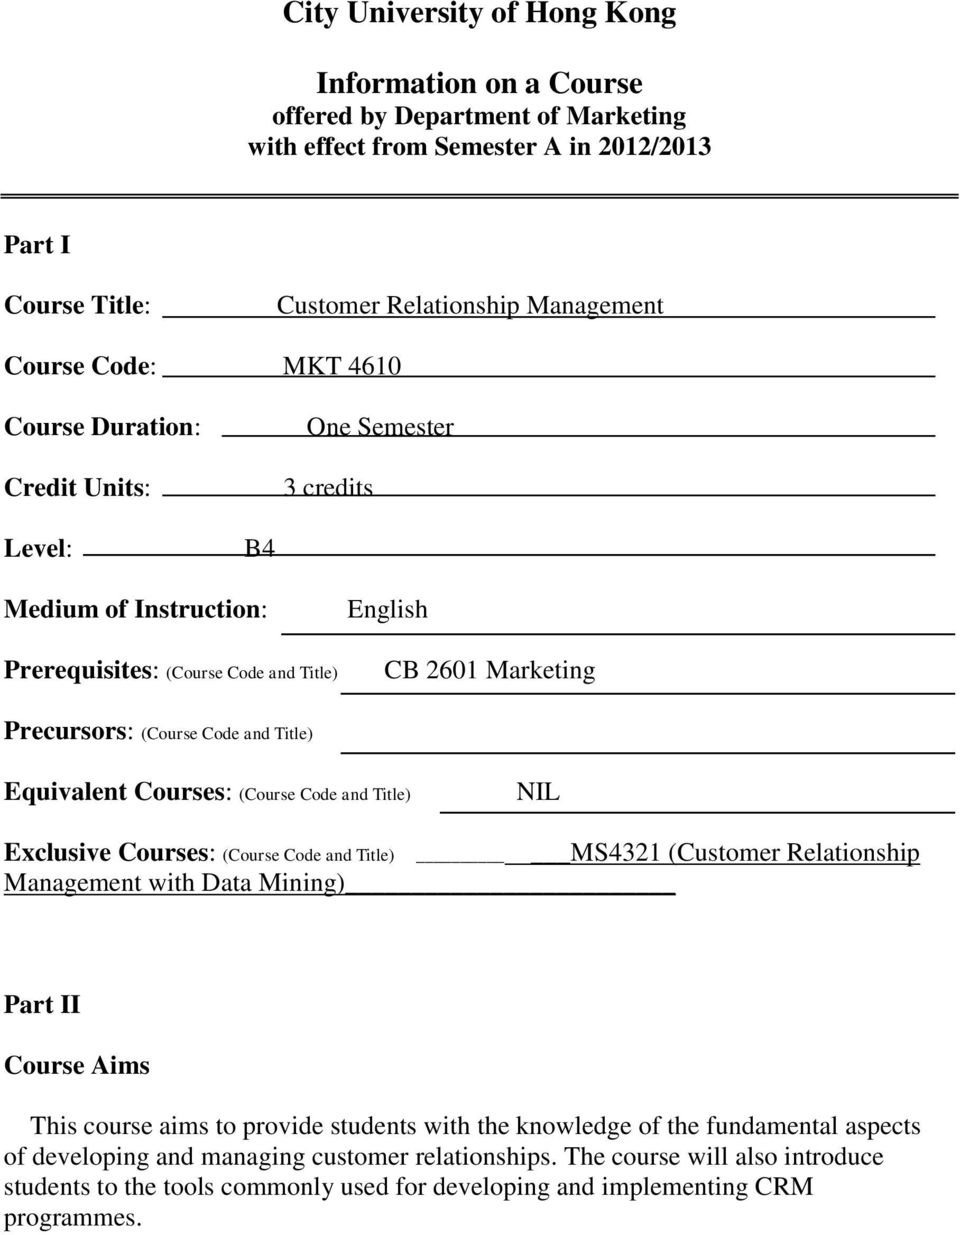 Equivalent Courses: (Course Code and Title) NIL Exclusive Courses: (Course Code and Title) MS4321 (Customer Relationship Management with ata Mining) Part II Course Aims This course aims to provide